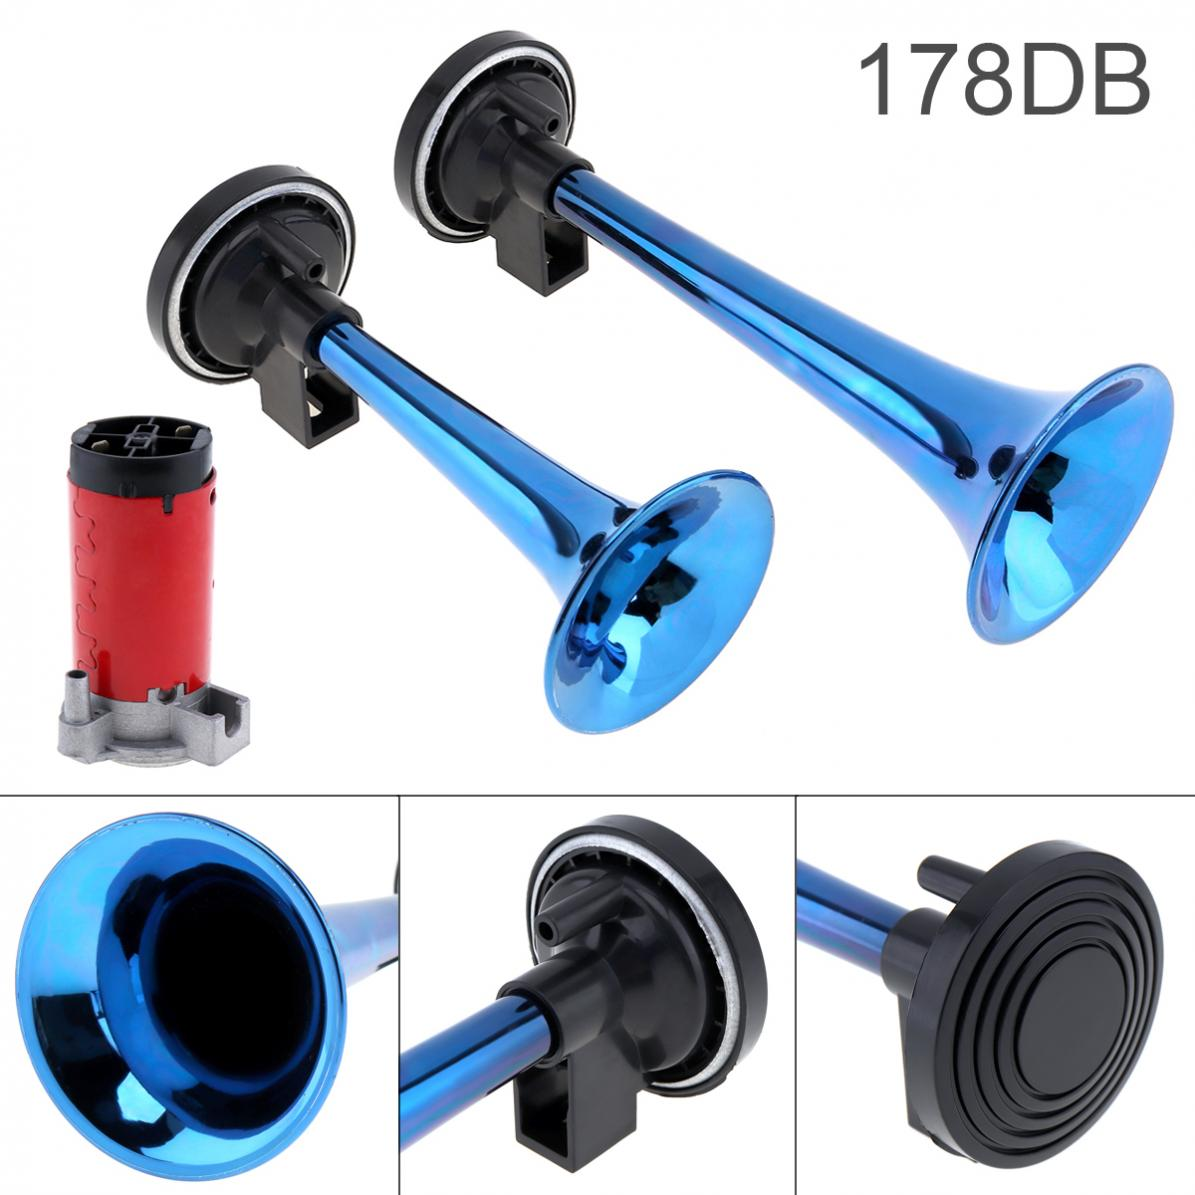 178dB Super Loud 12V Dual Tone Auto Car Air Claxon Horn High Output Compressor Set Trumpet for Motorcycle Boat Truck